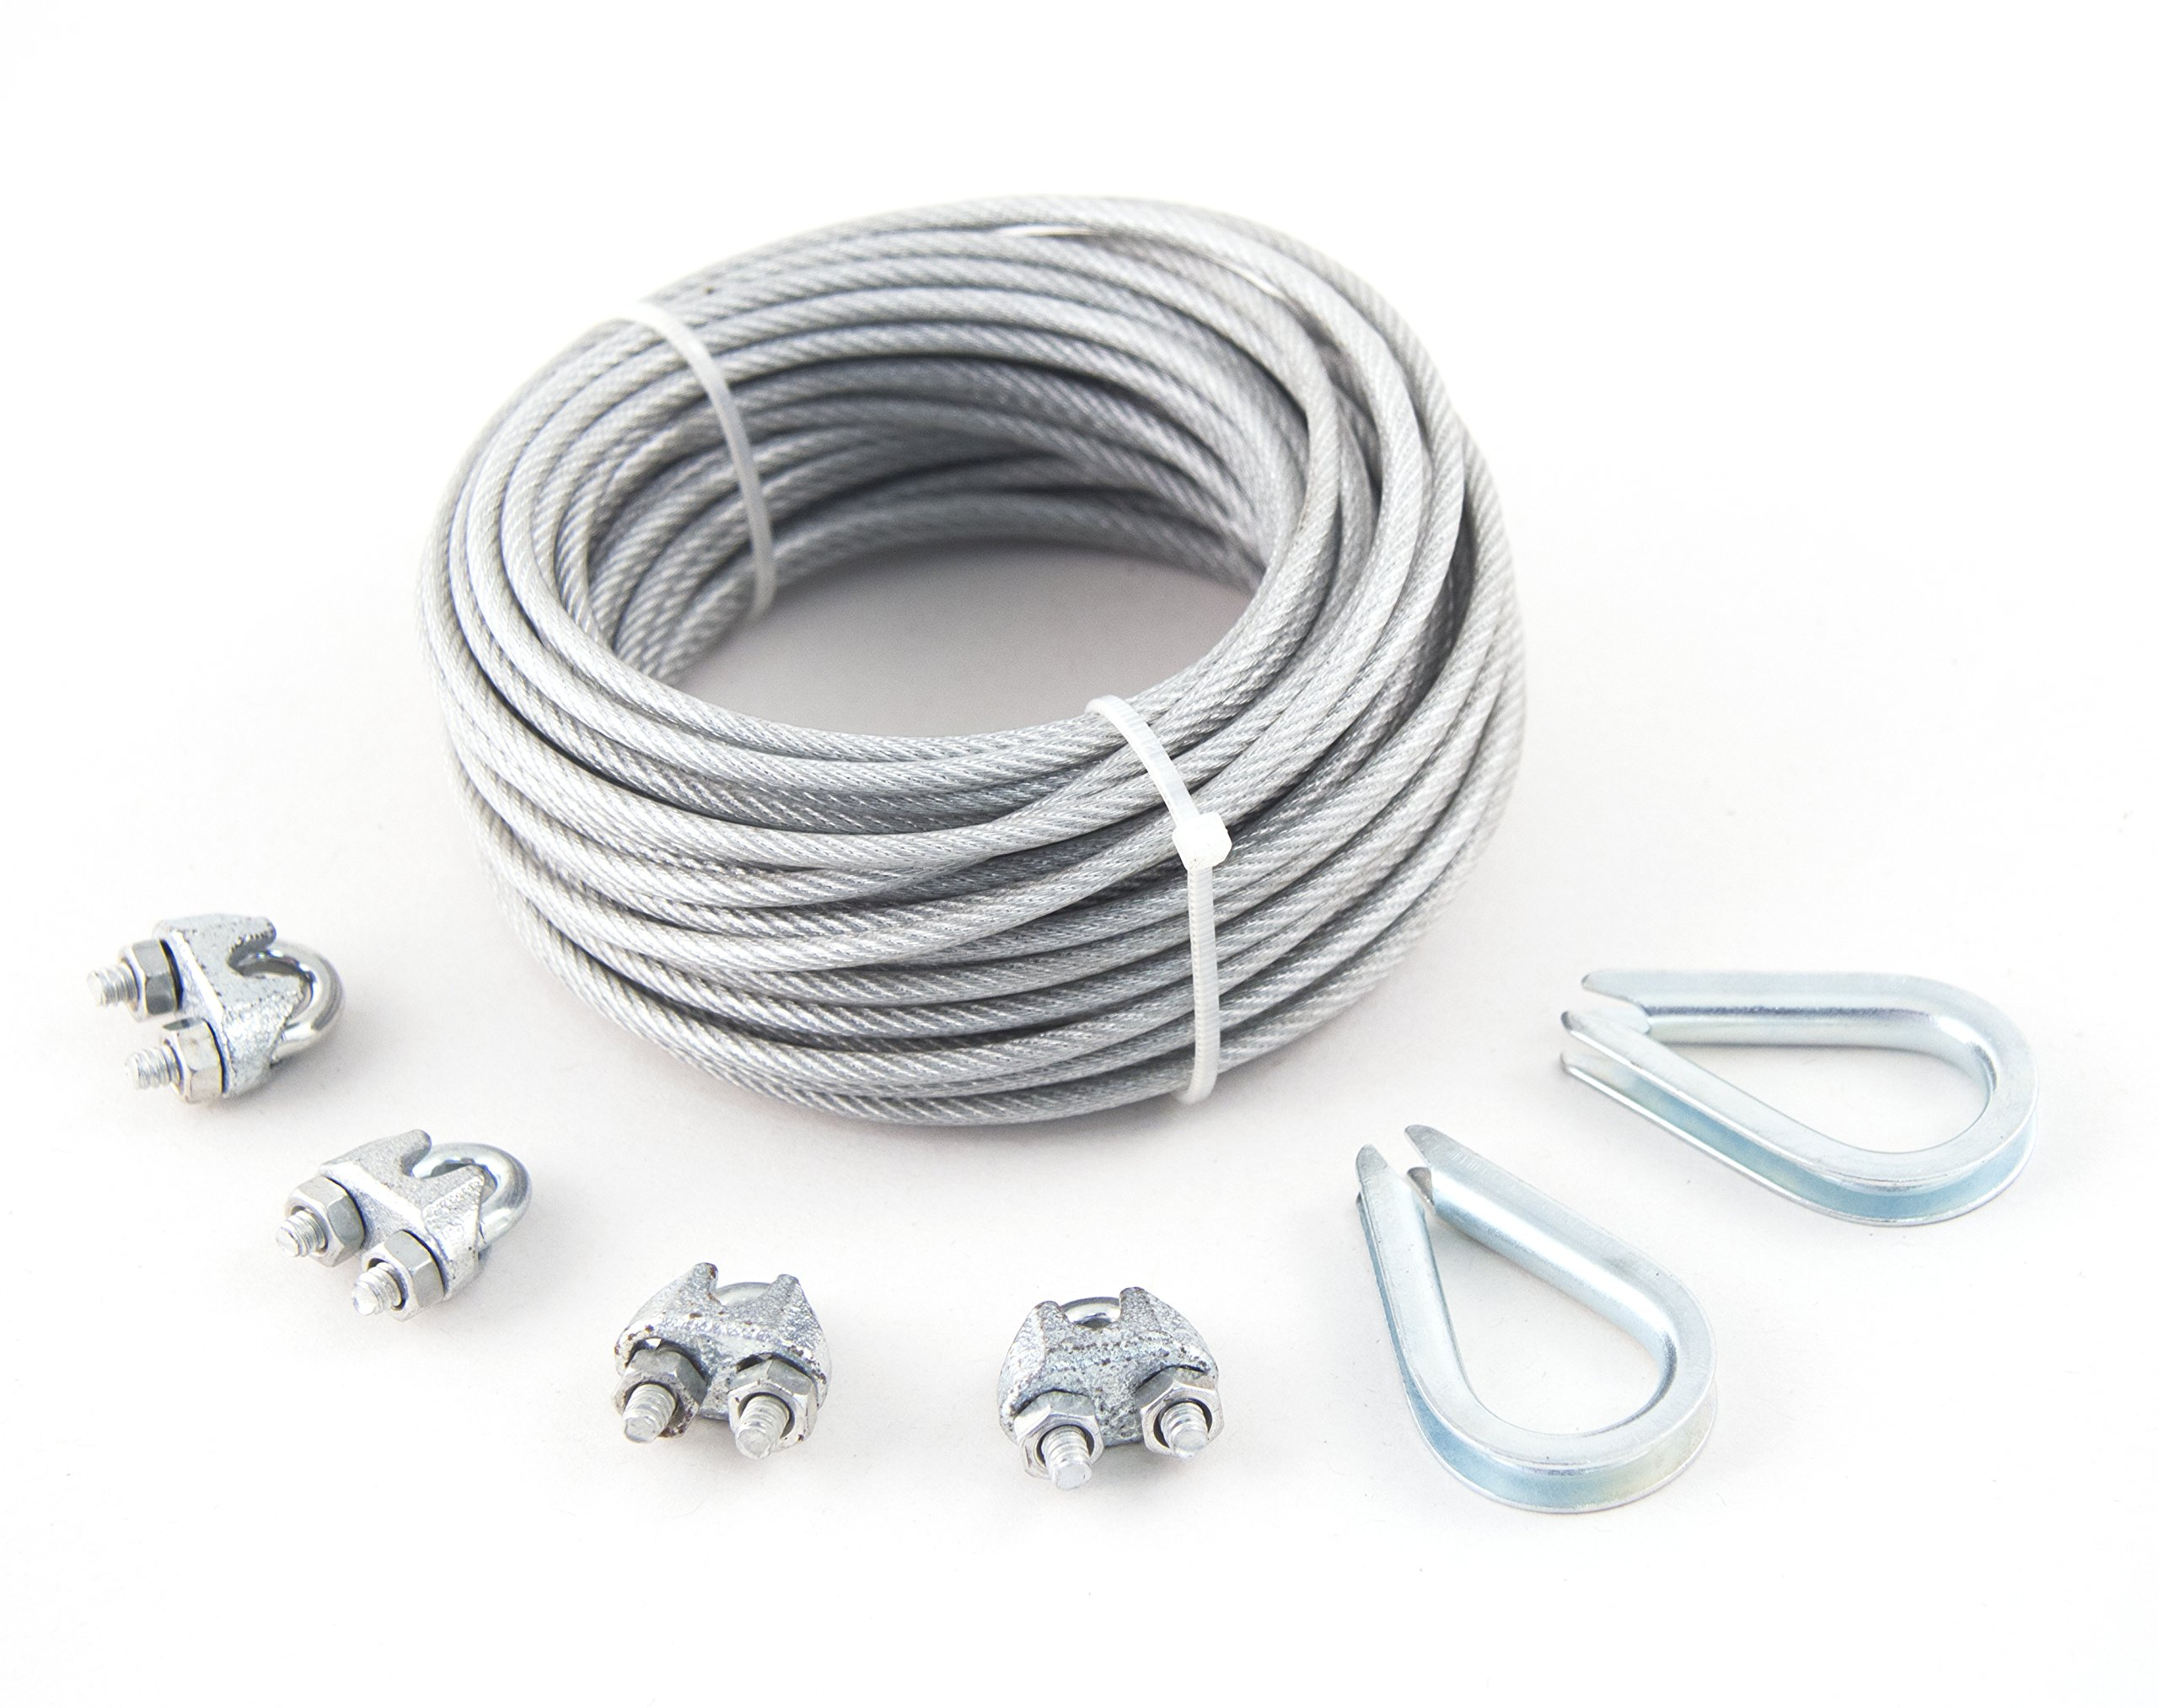 KingChain 505151 3/32'' x 1/8'' x 50' Pvc-Coated Galvanized Aircraft Cable Kit